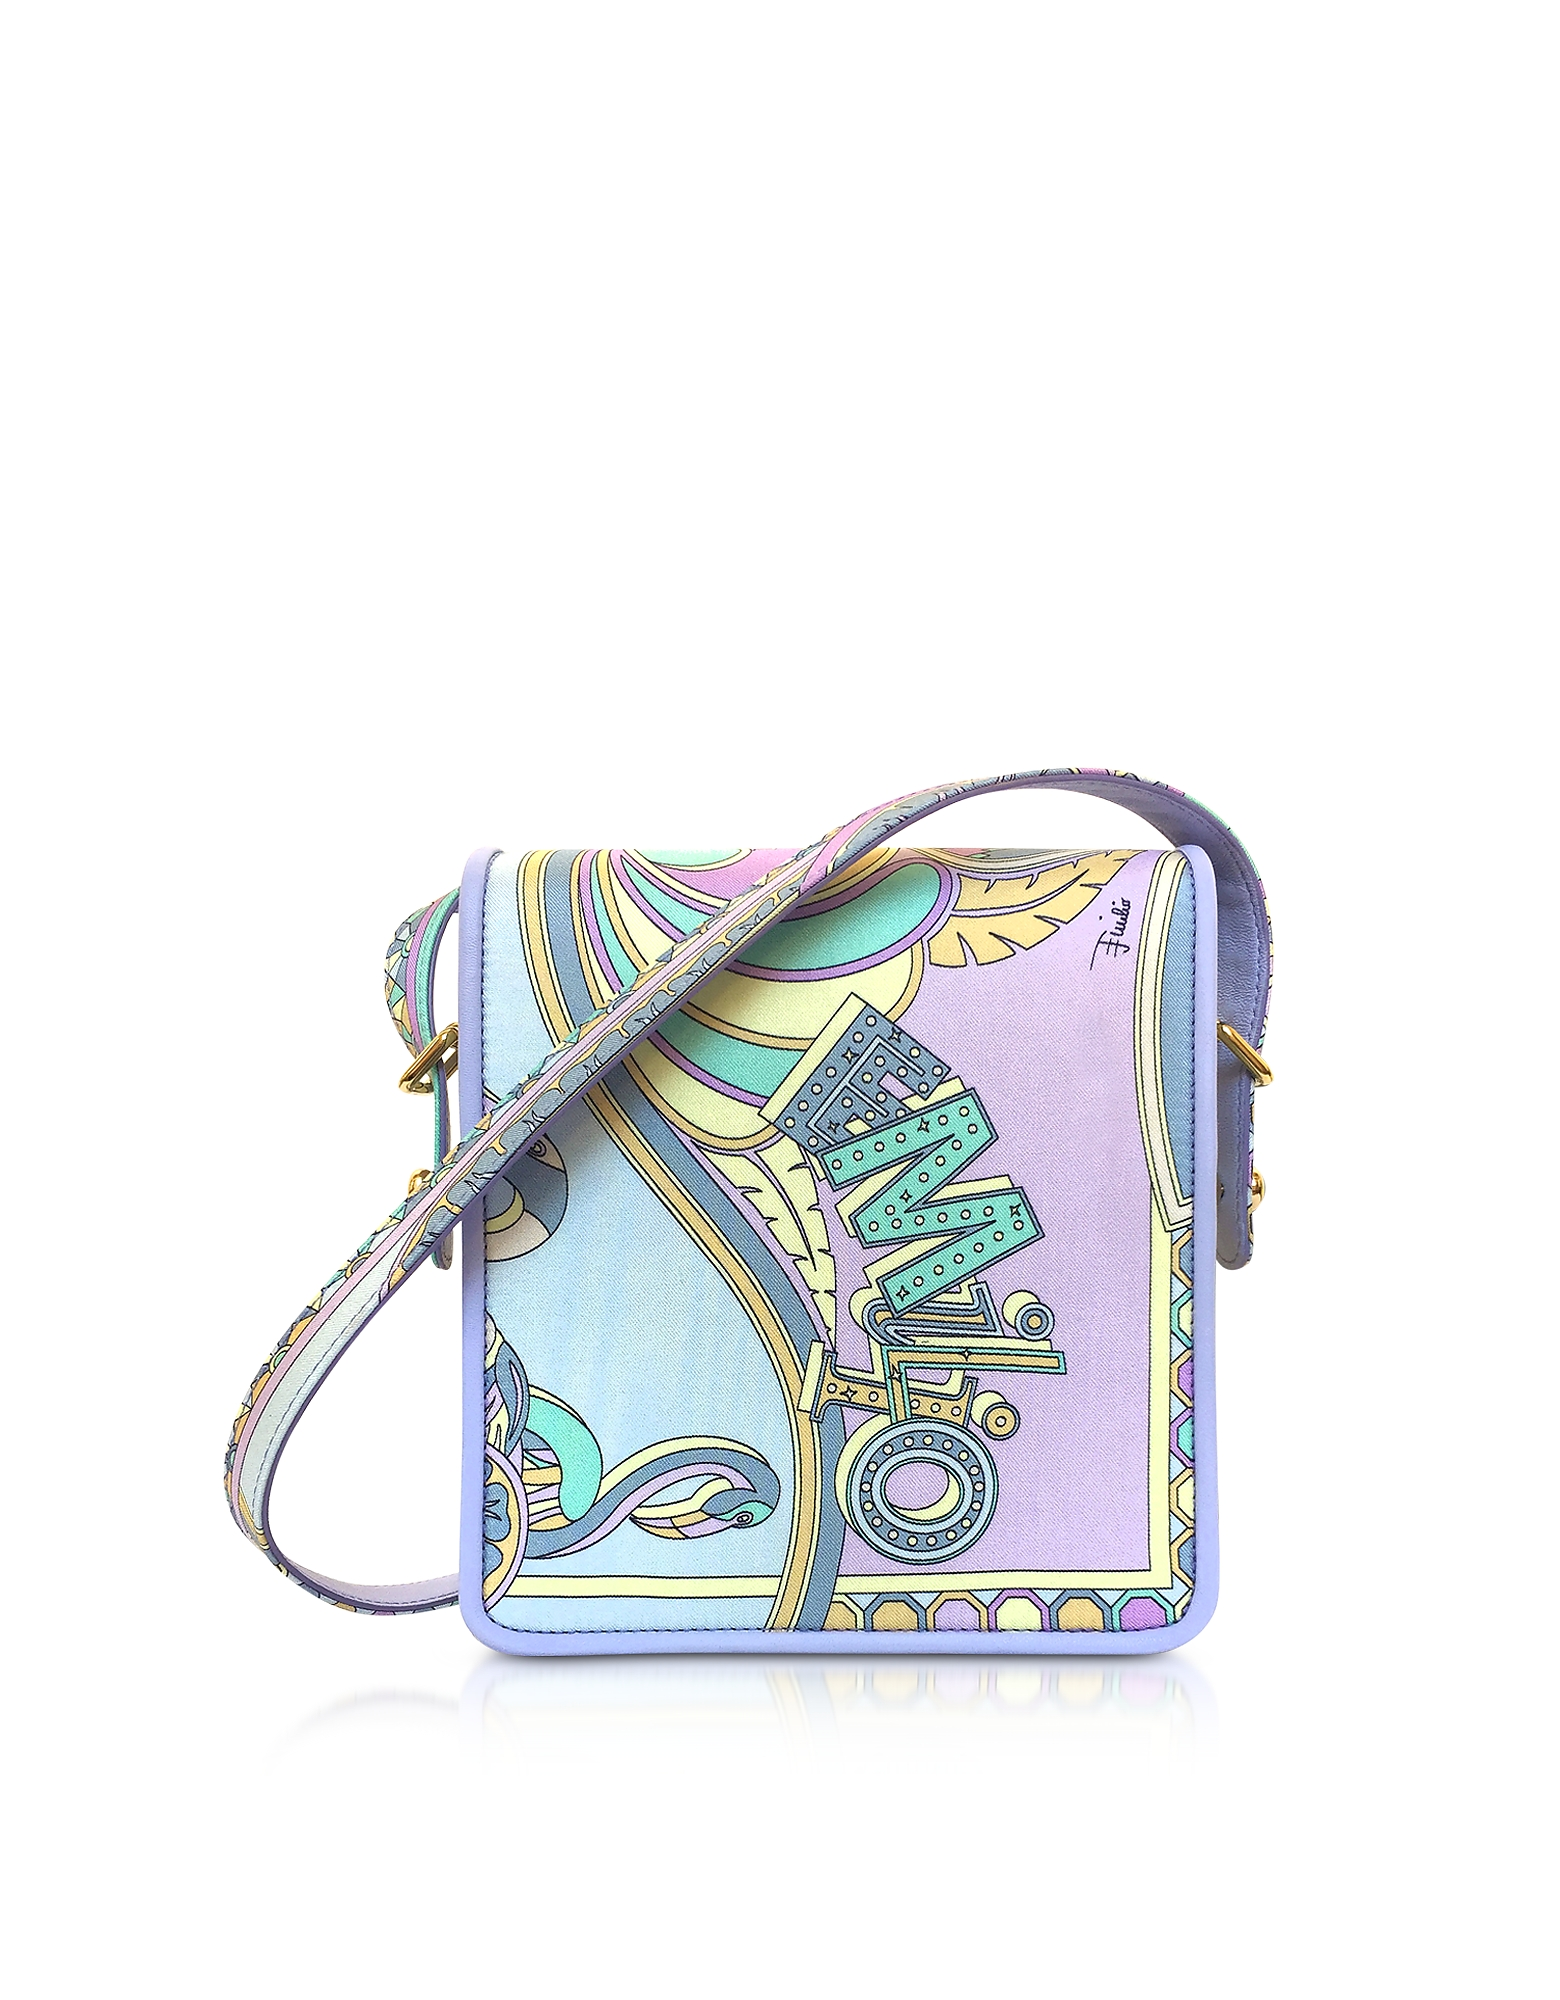 Emilio Pucci Handbags, Wisteria Printed Silk Shoulder Bag